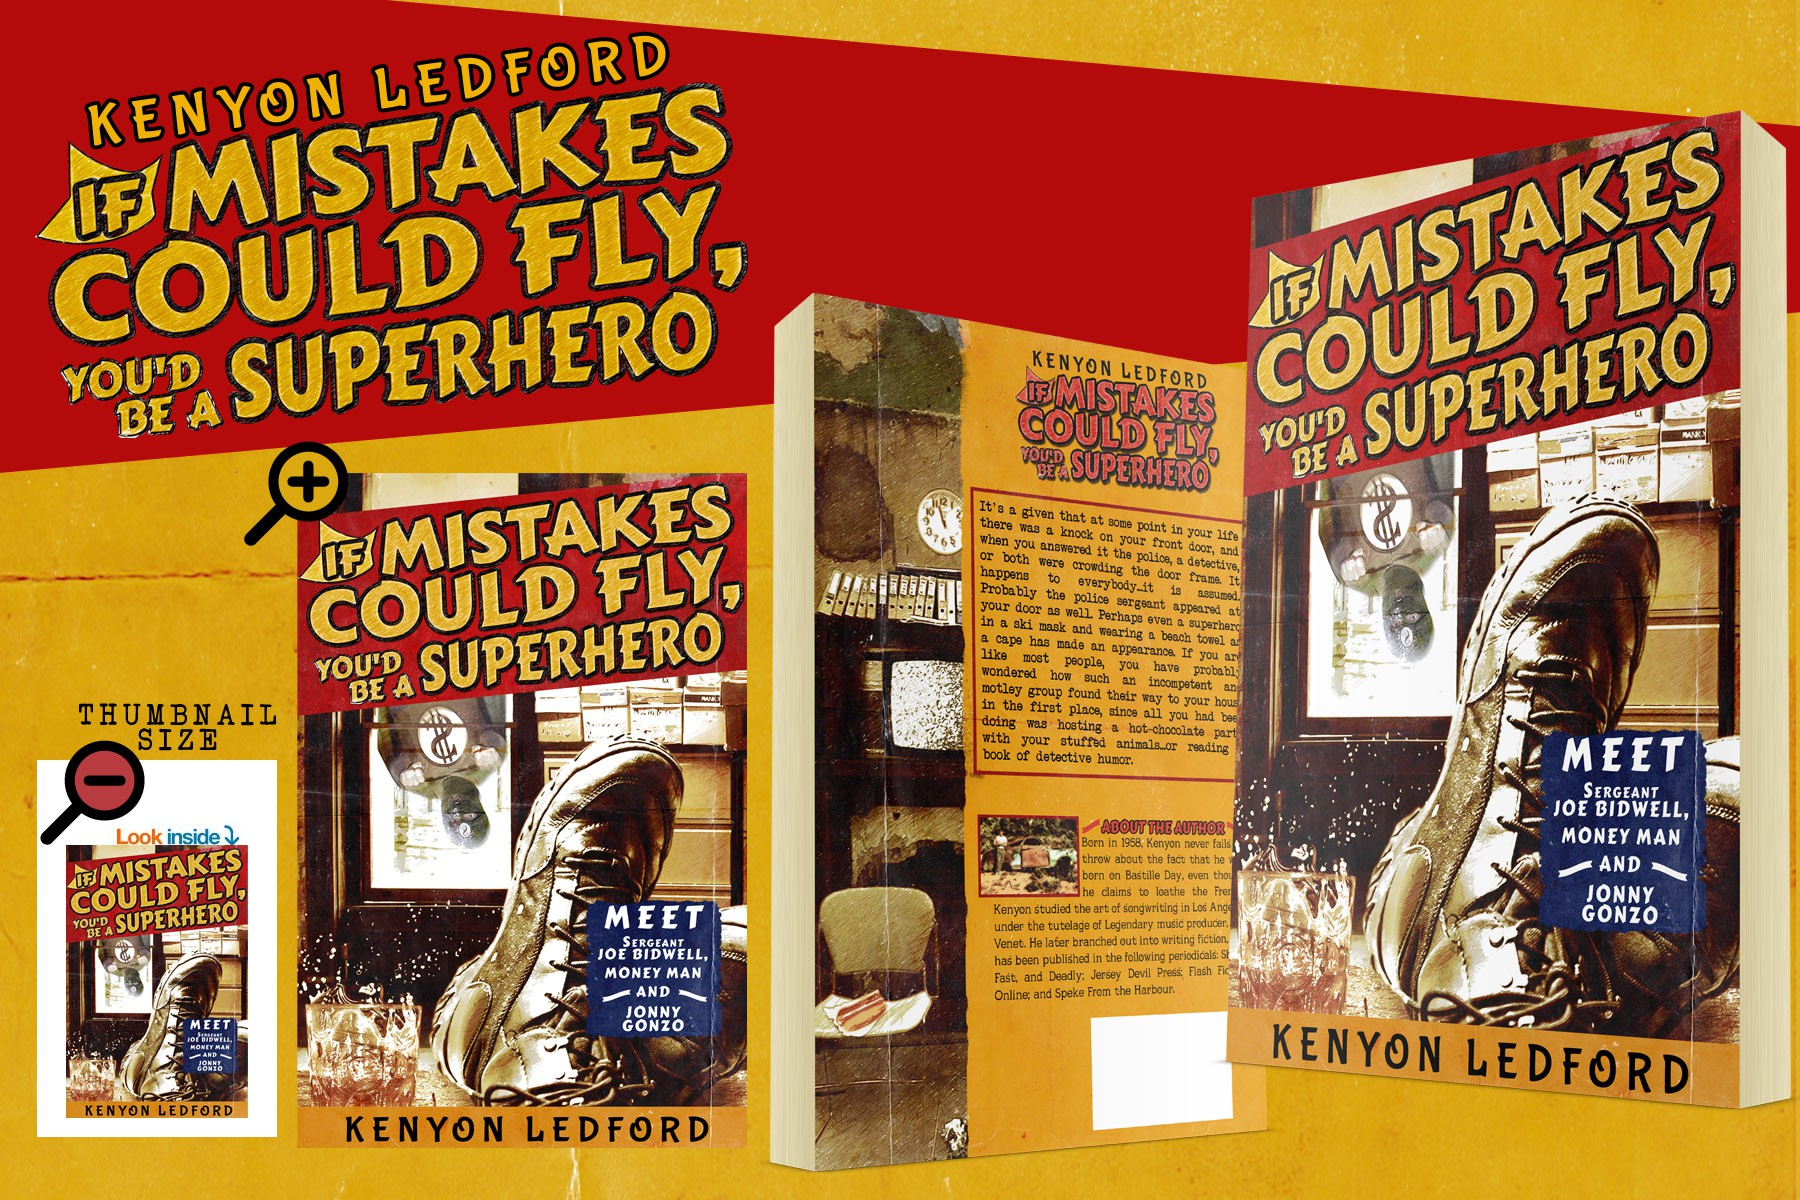 Create a captivating cover for an Ebook about looser PI's, moronic cops, and a superhero pickpocket